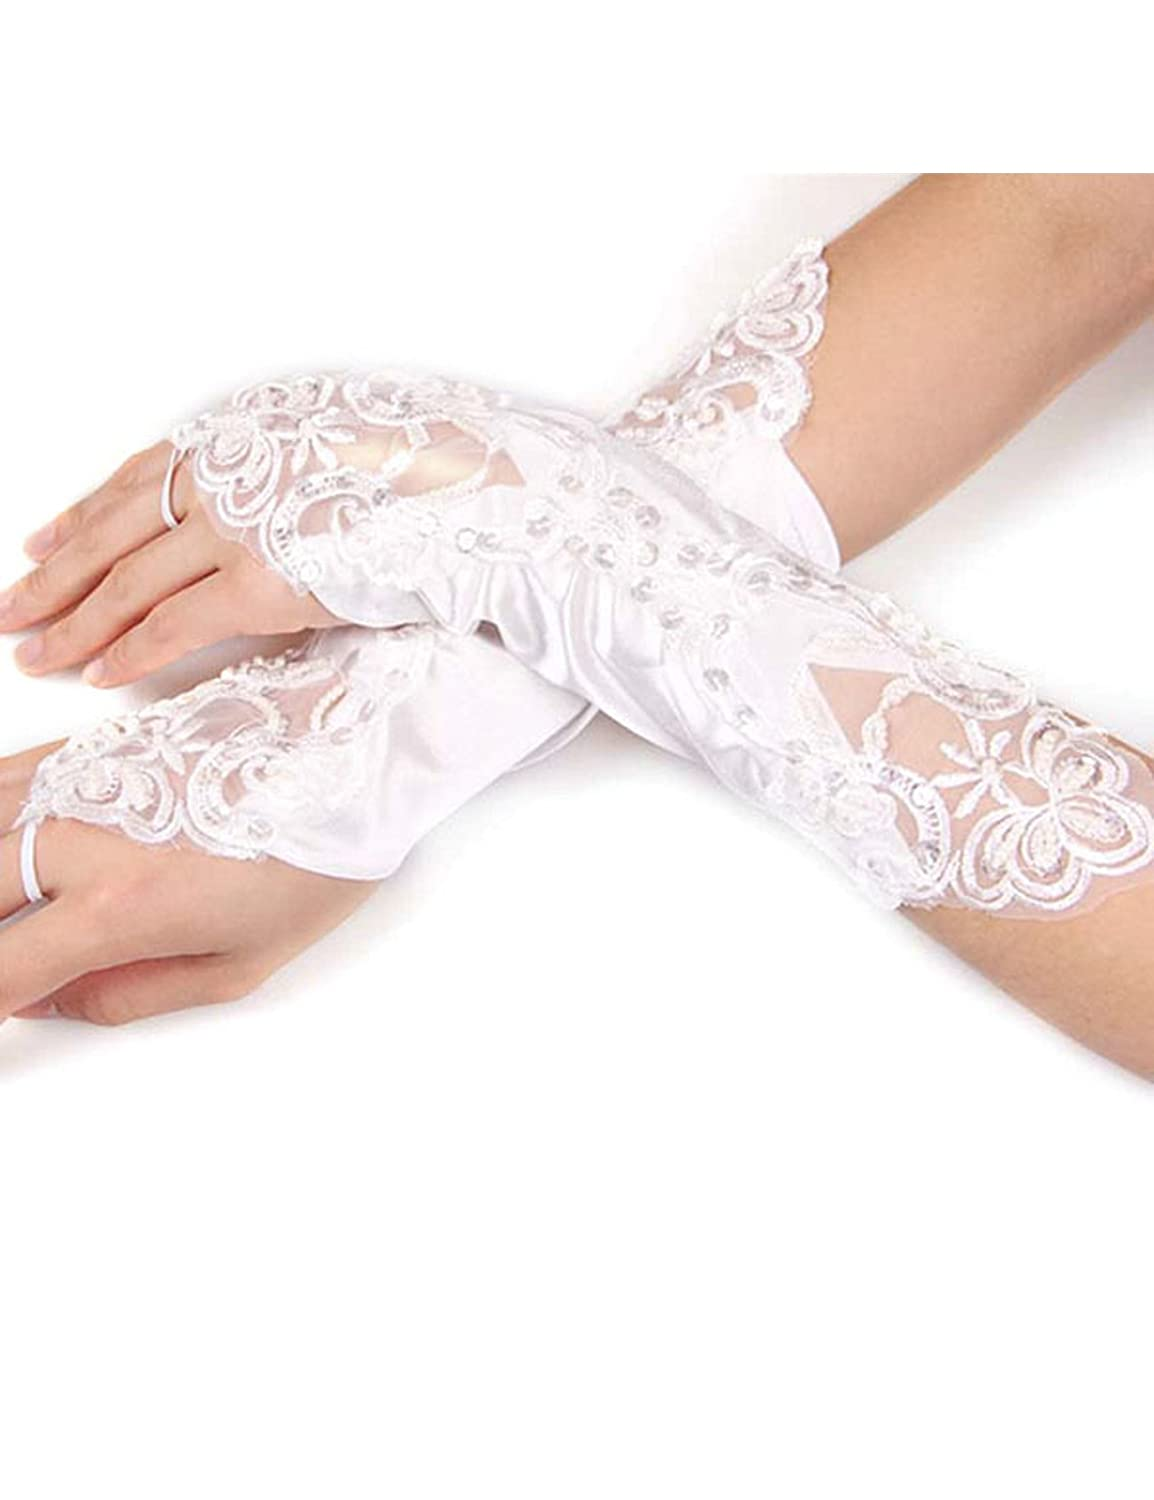 Letuwj Womens Wedding Gloves Sequins Fingerless Accessory with Feak Pearl White One size LTUWWJ0102-1